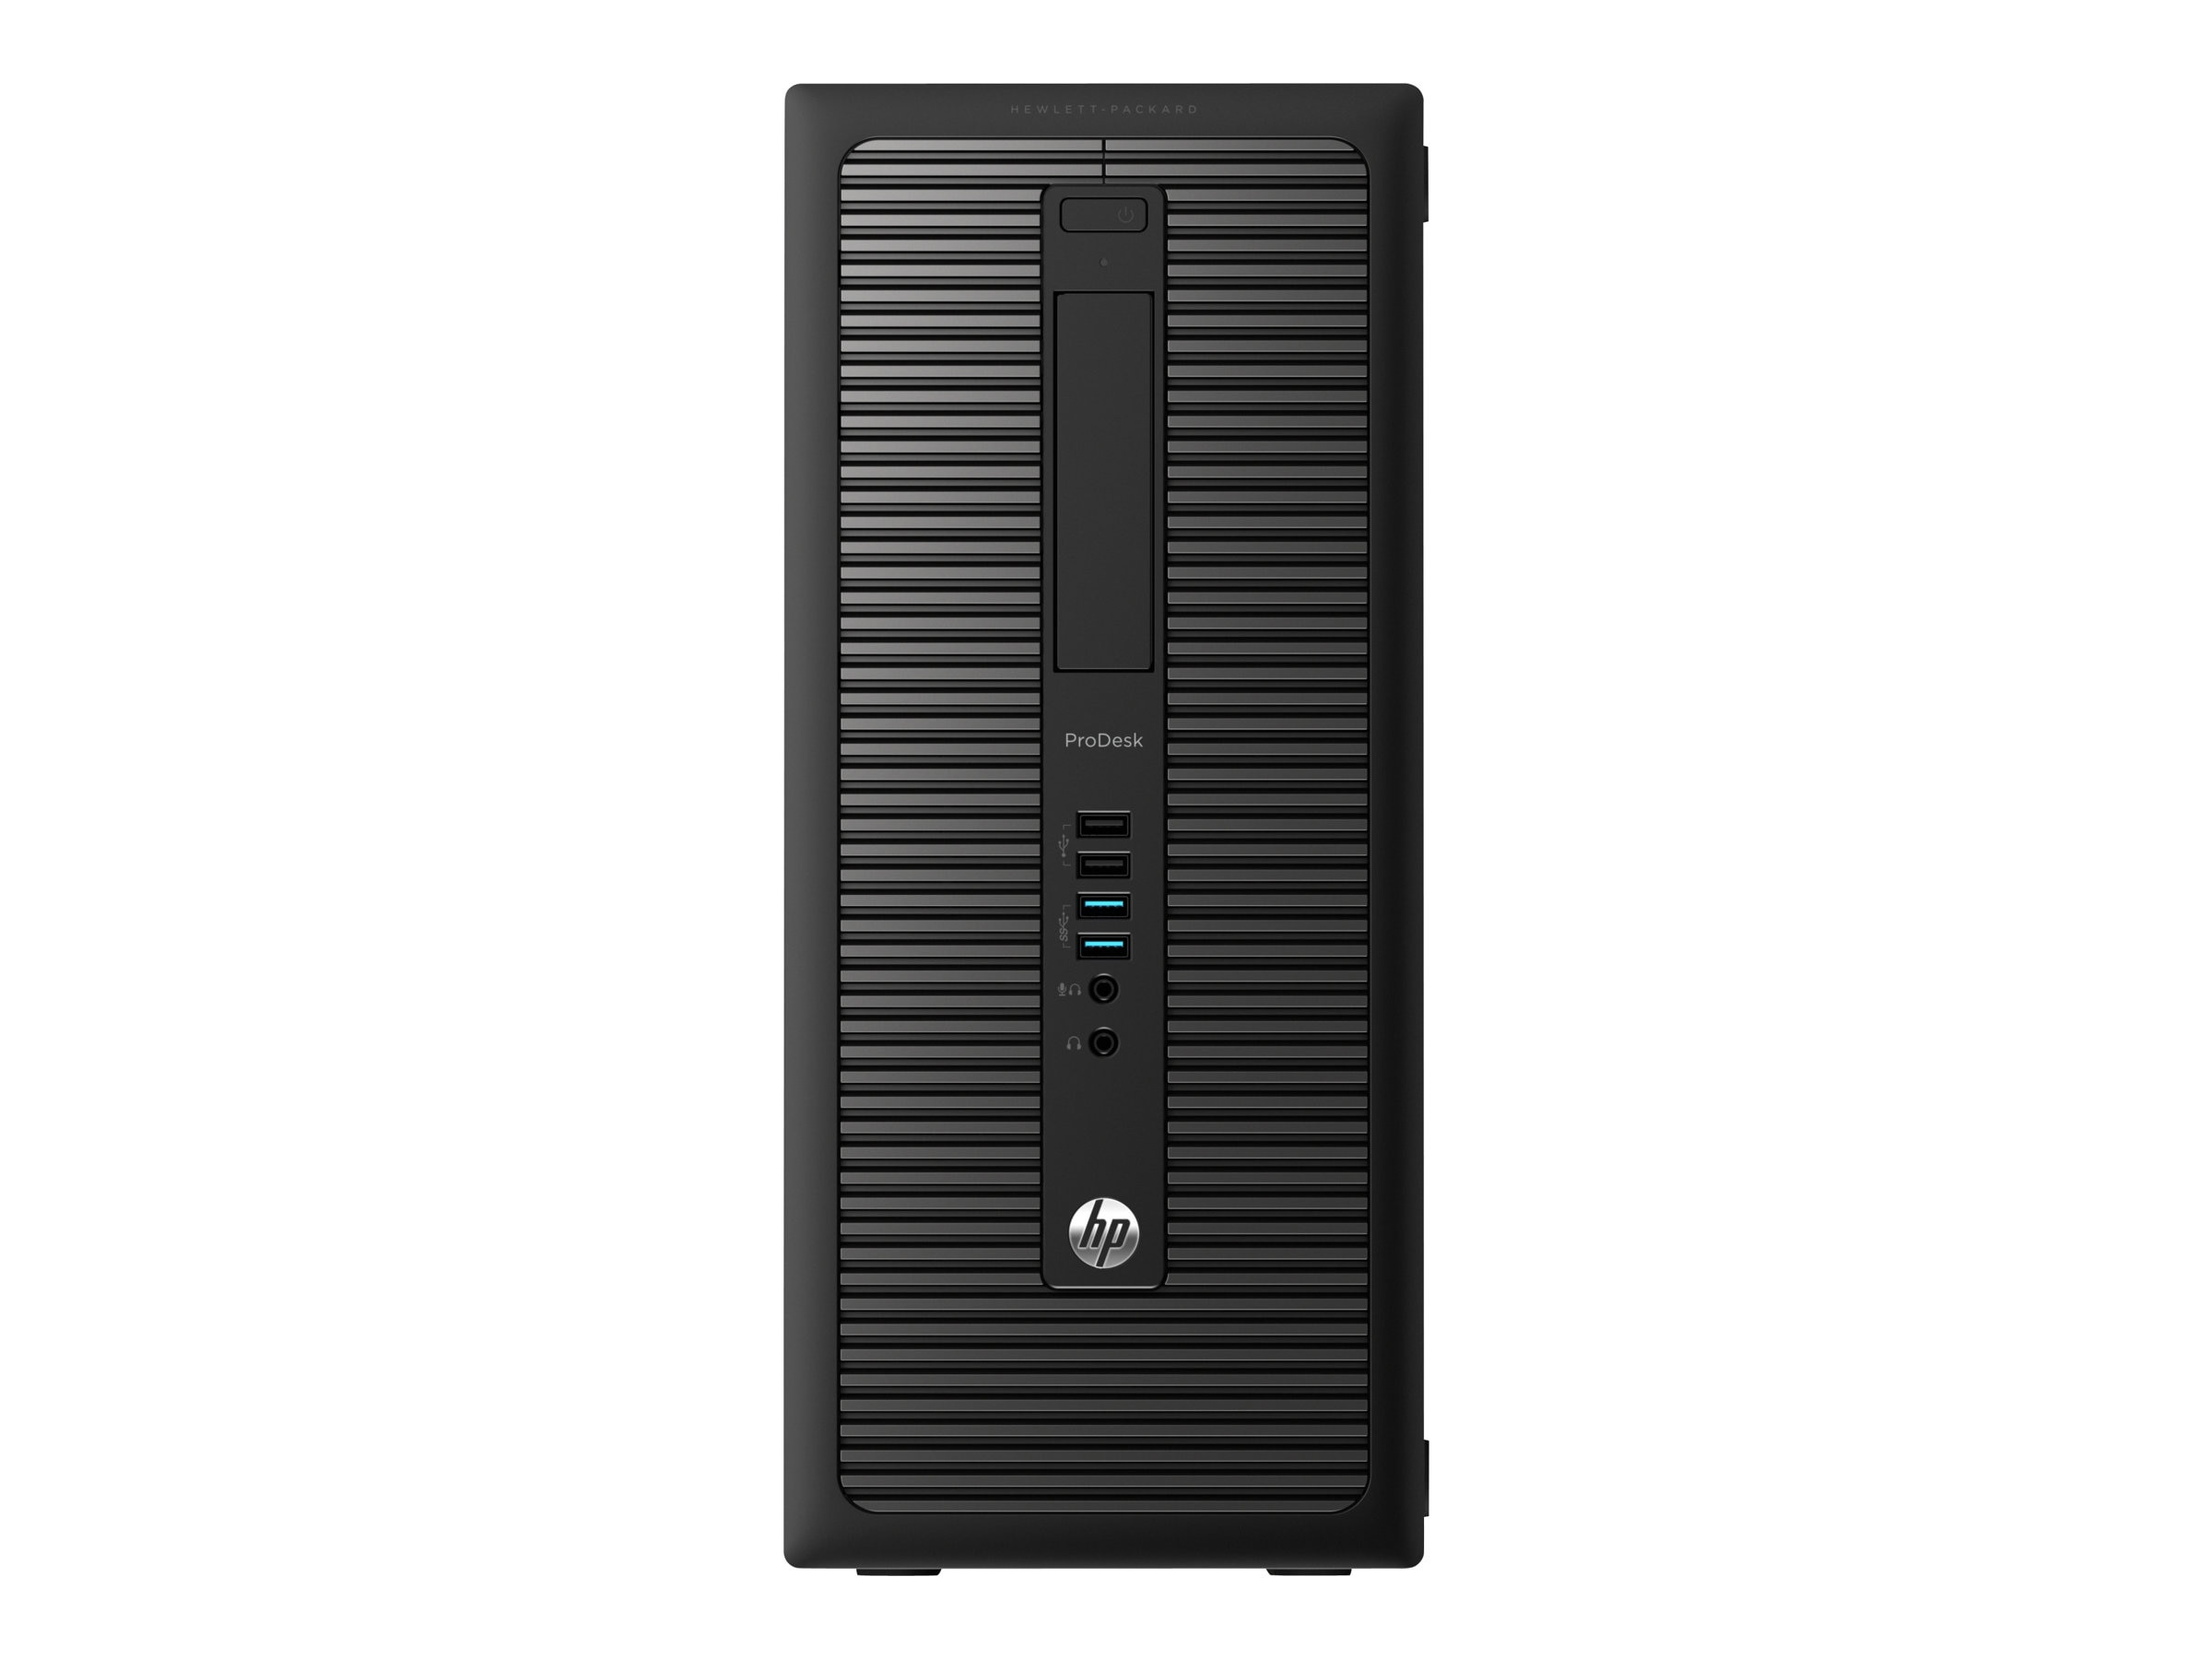 HP EliteDesk 800 Tower Core i5-4570 3.2GHz 8GB 500GB, F5E60UP#ABA